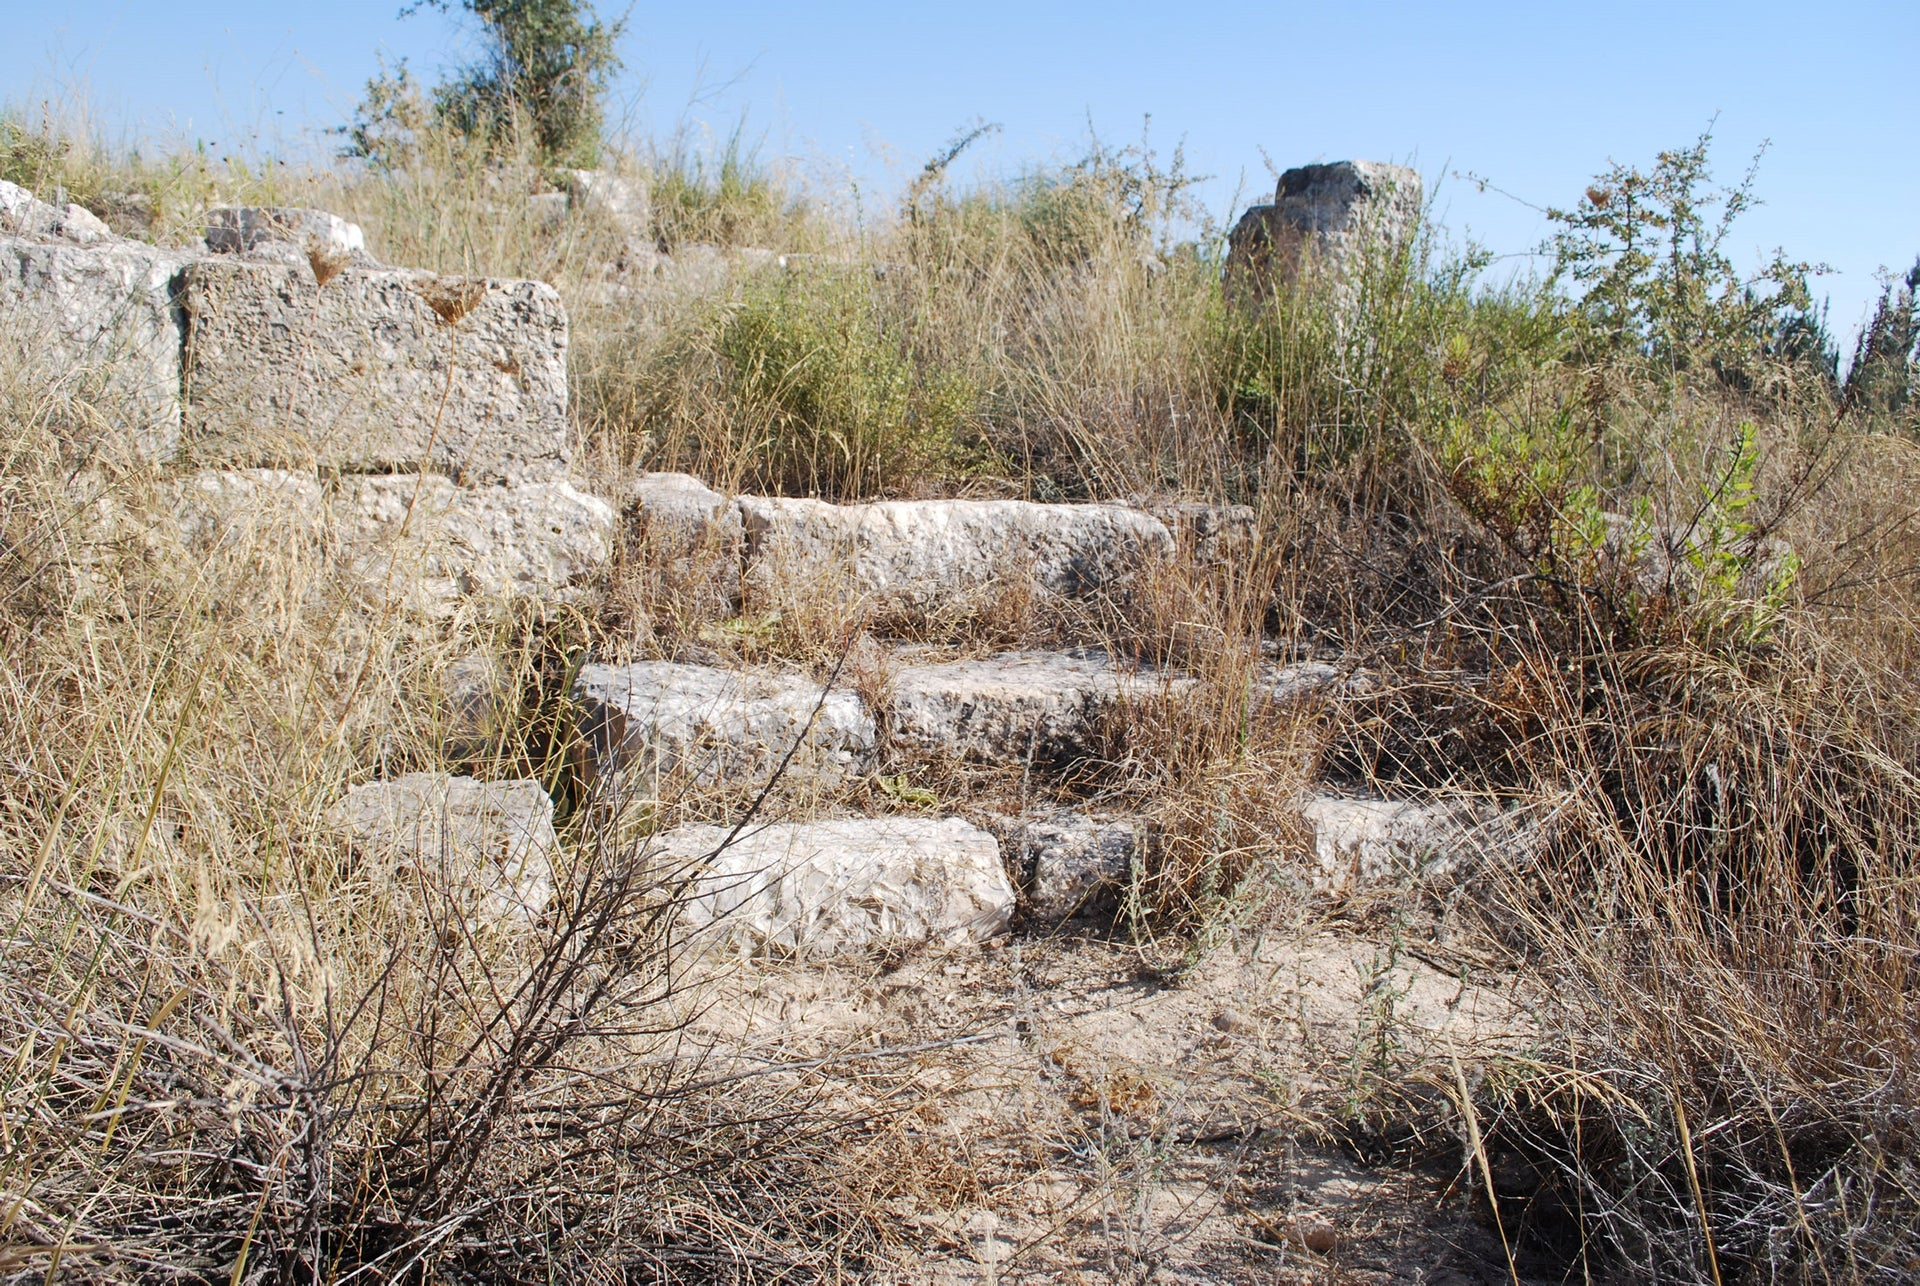 Horvat Hani: Remains of an early Byzantine church and the first nunnery ever found in Israel